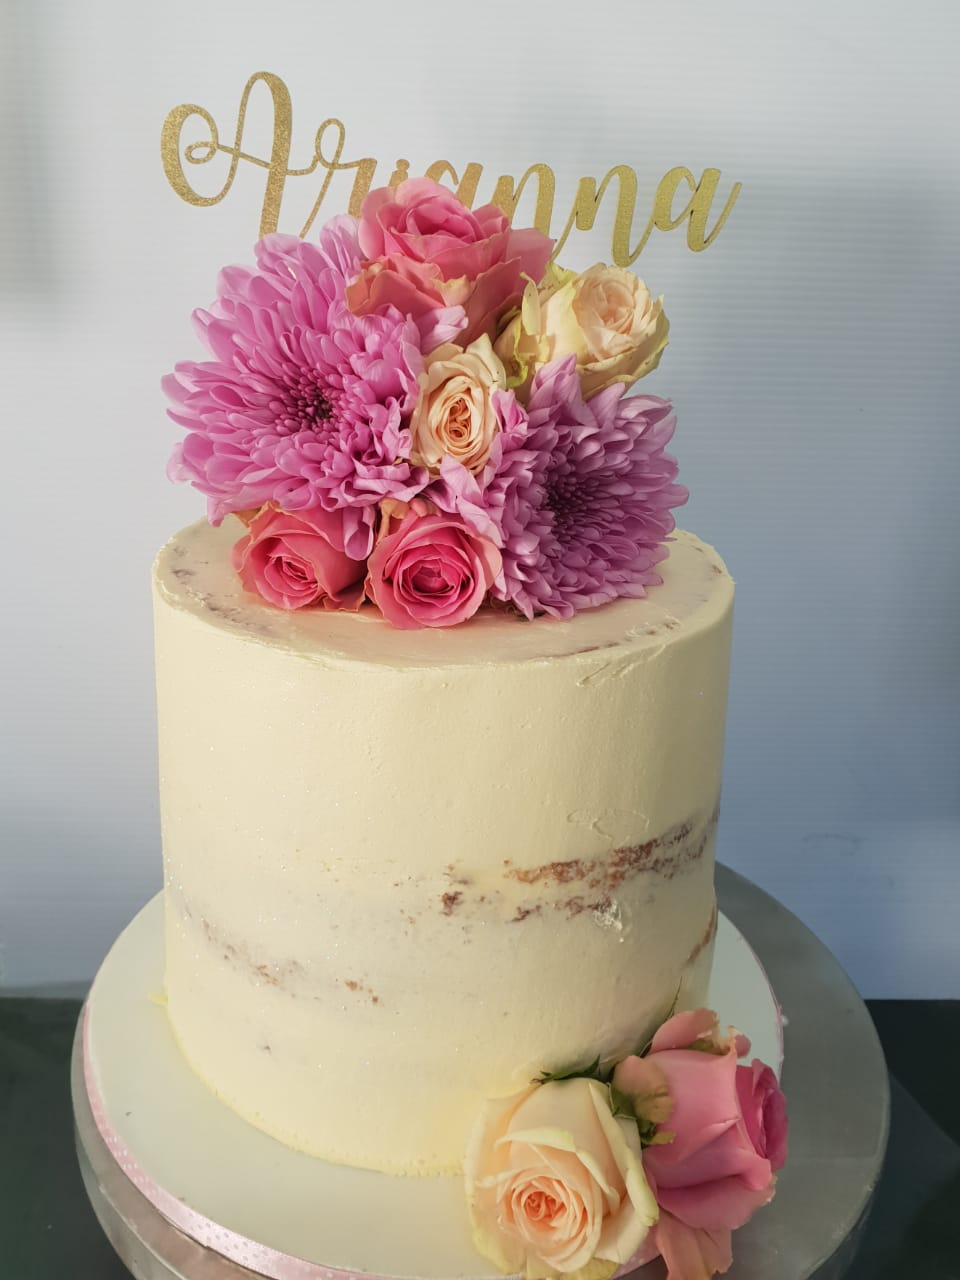 wedding cakes can be simple or complex. This simple cake has a flower design to it that says a breath of fresh air.